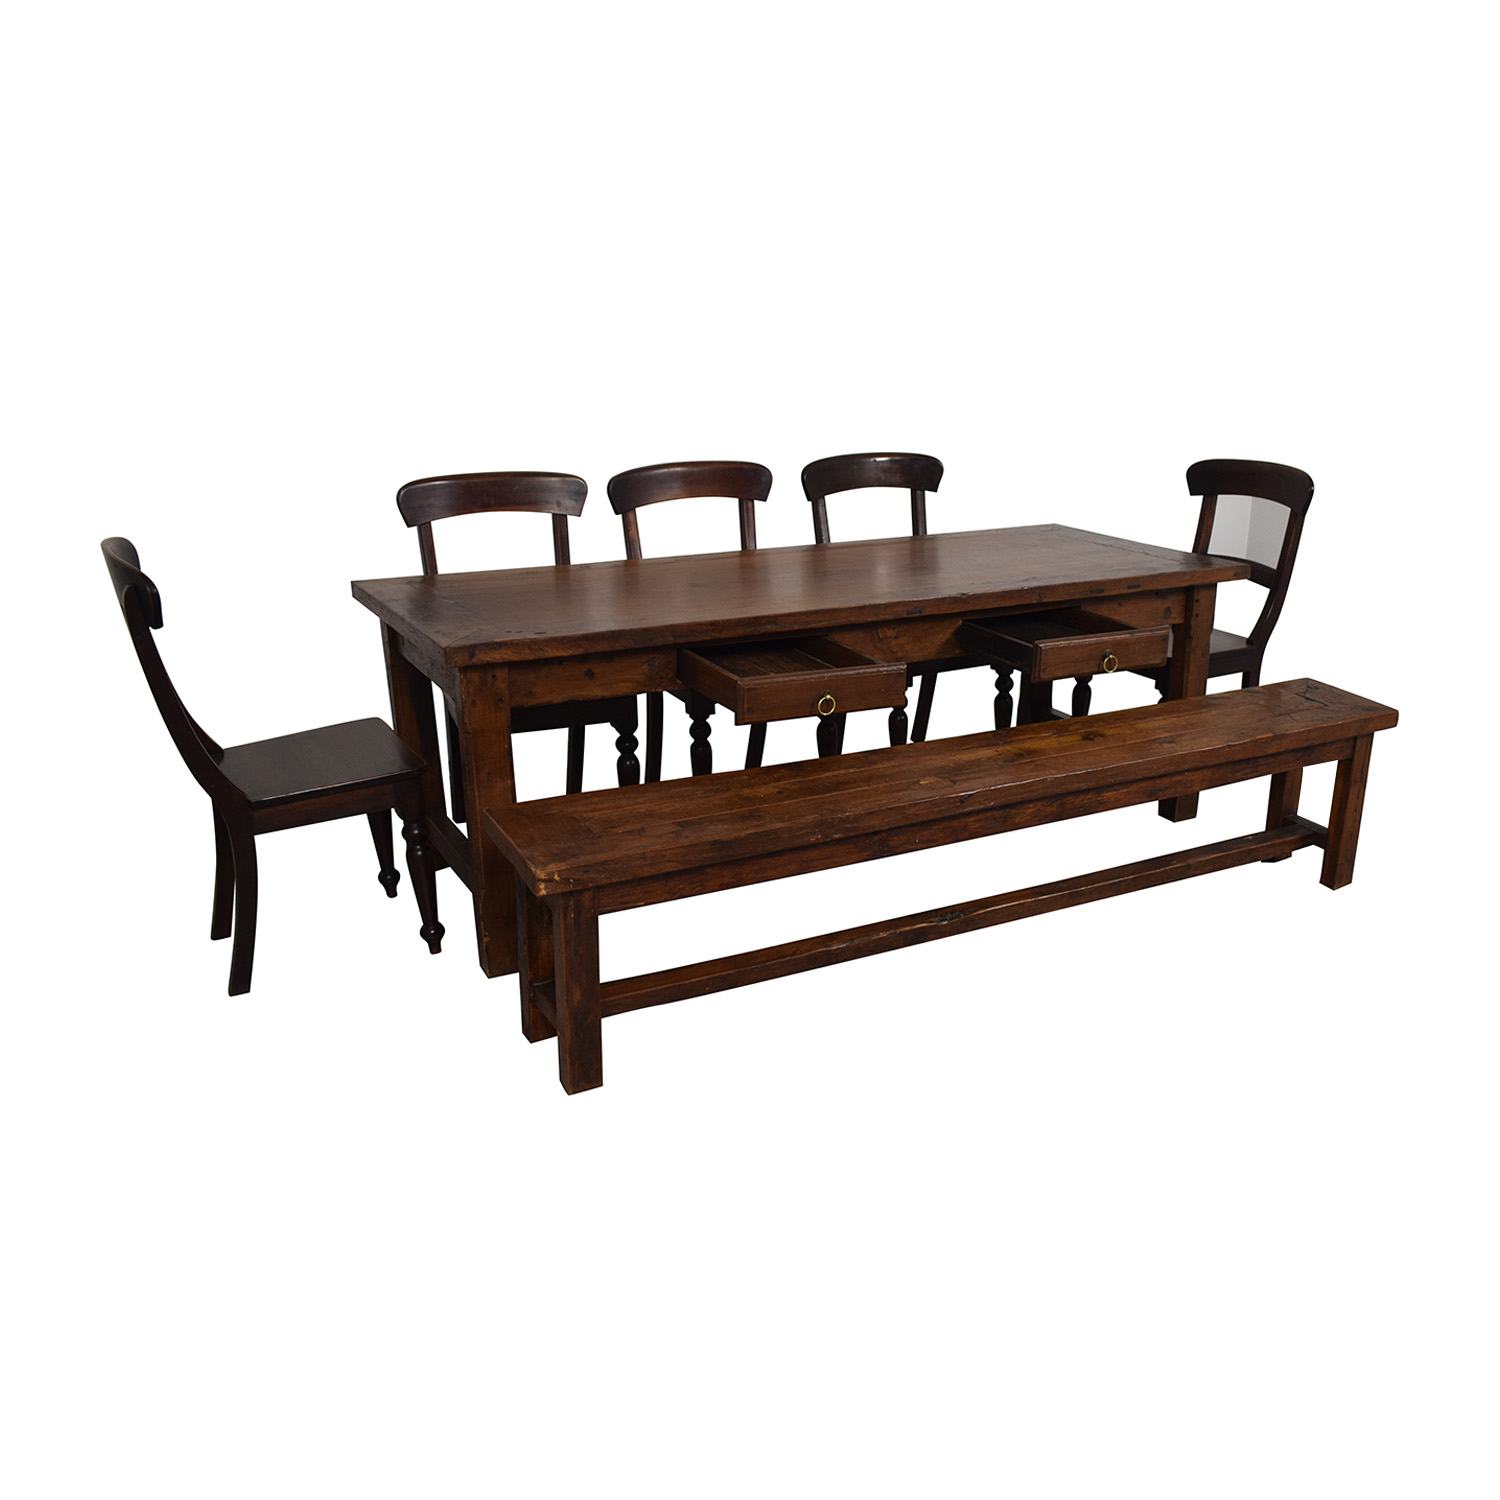 Crate & Barrel Crate & Barrel Extendable Dining Set with Bench for sale